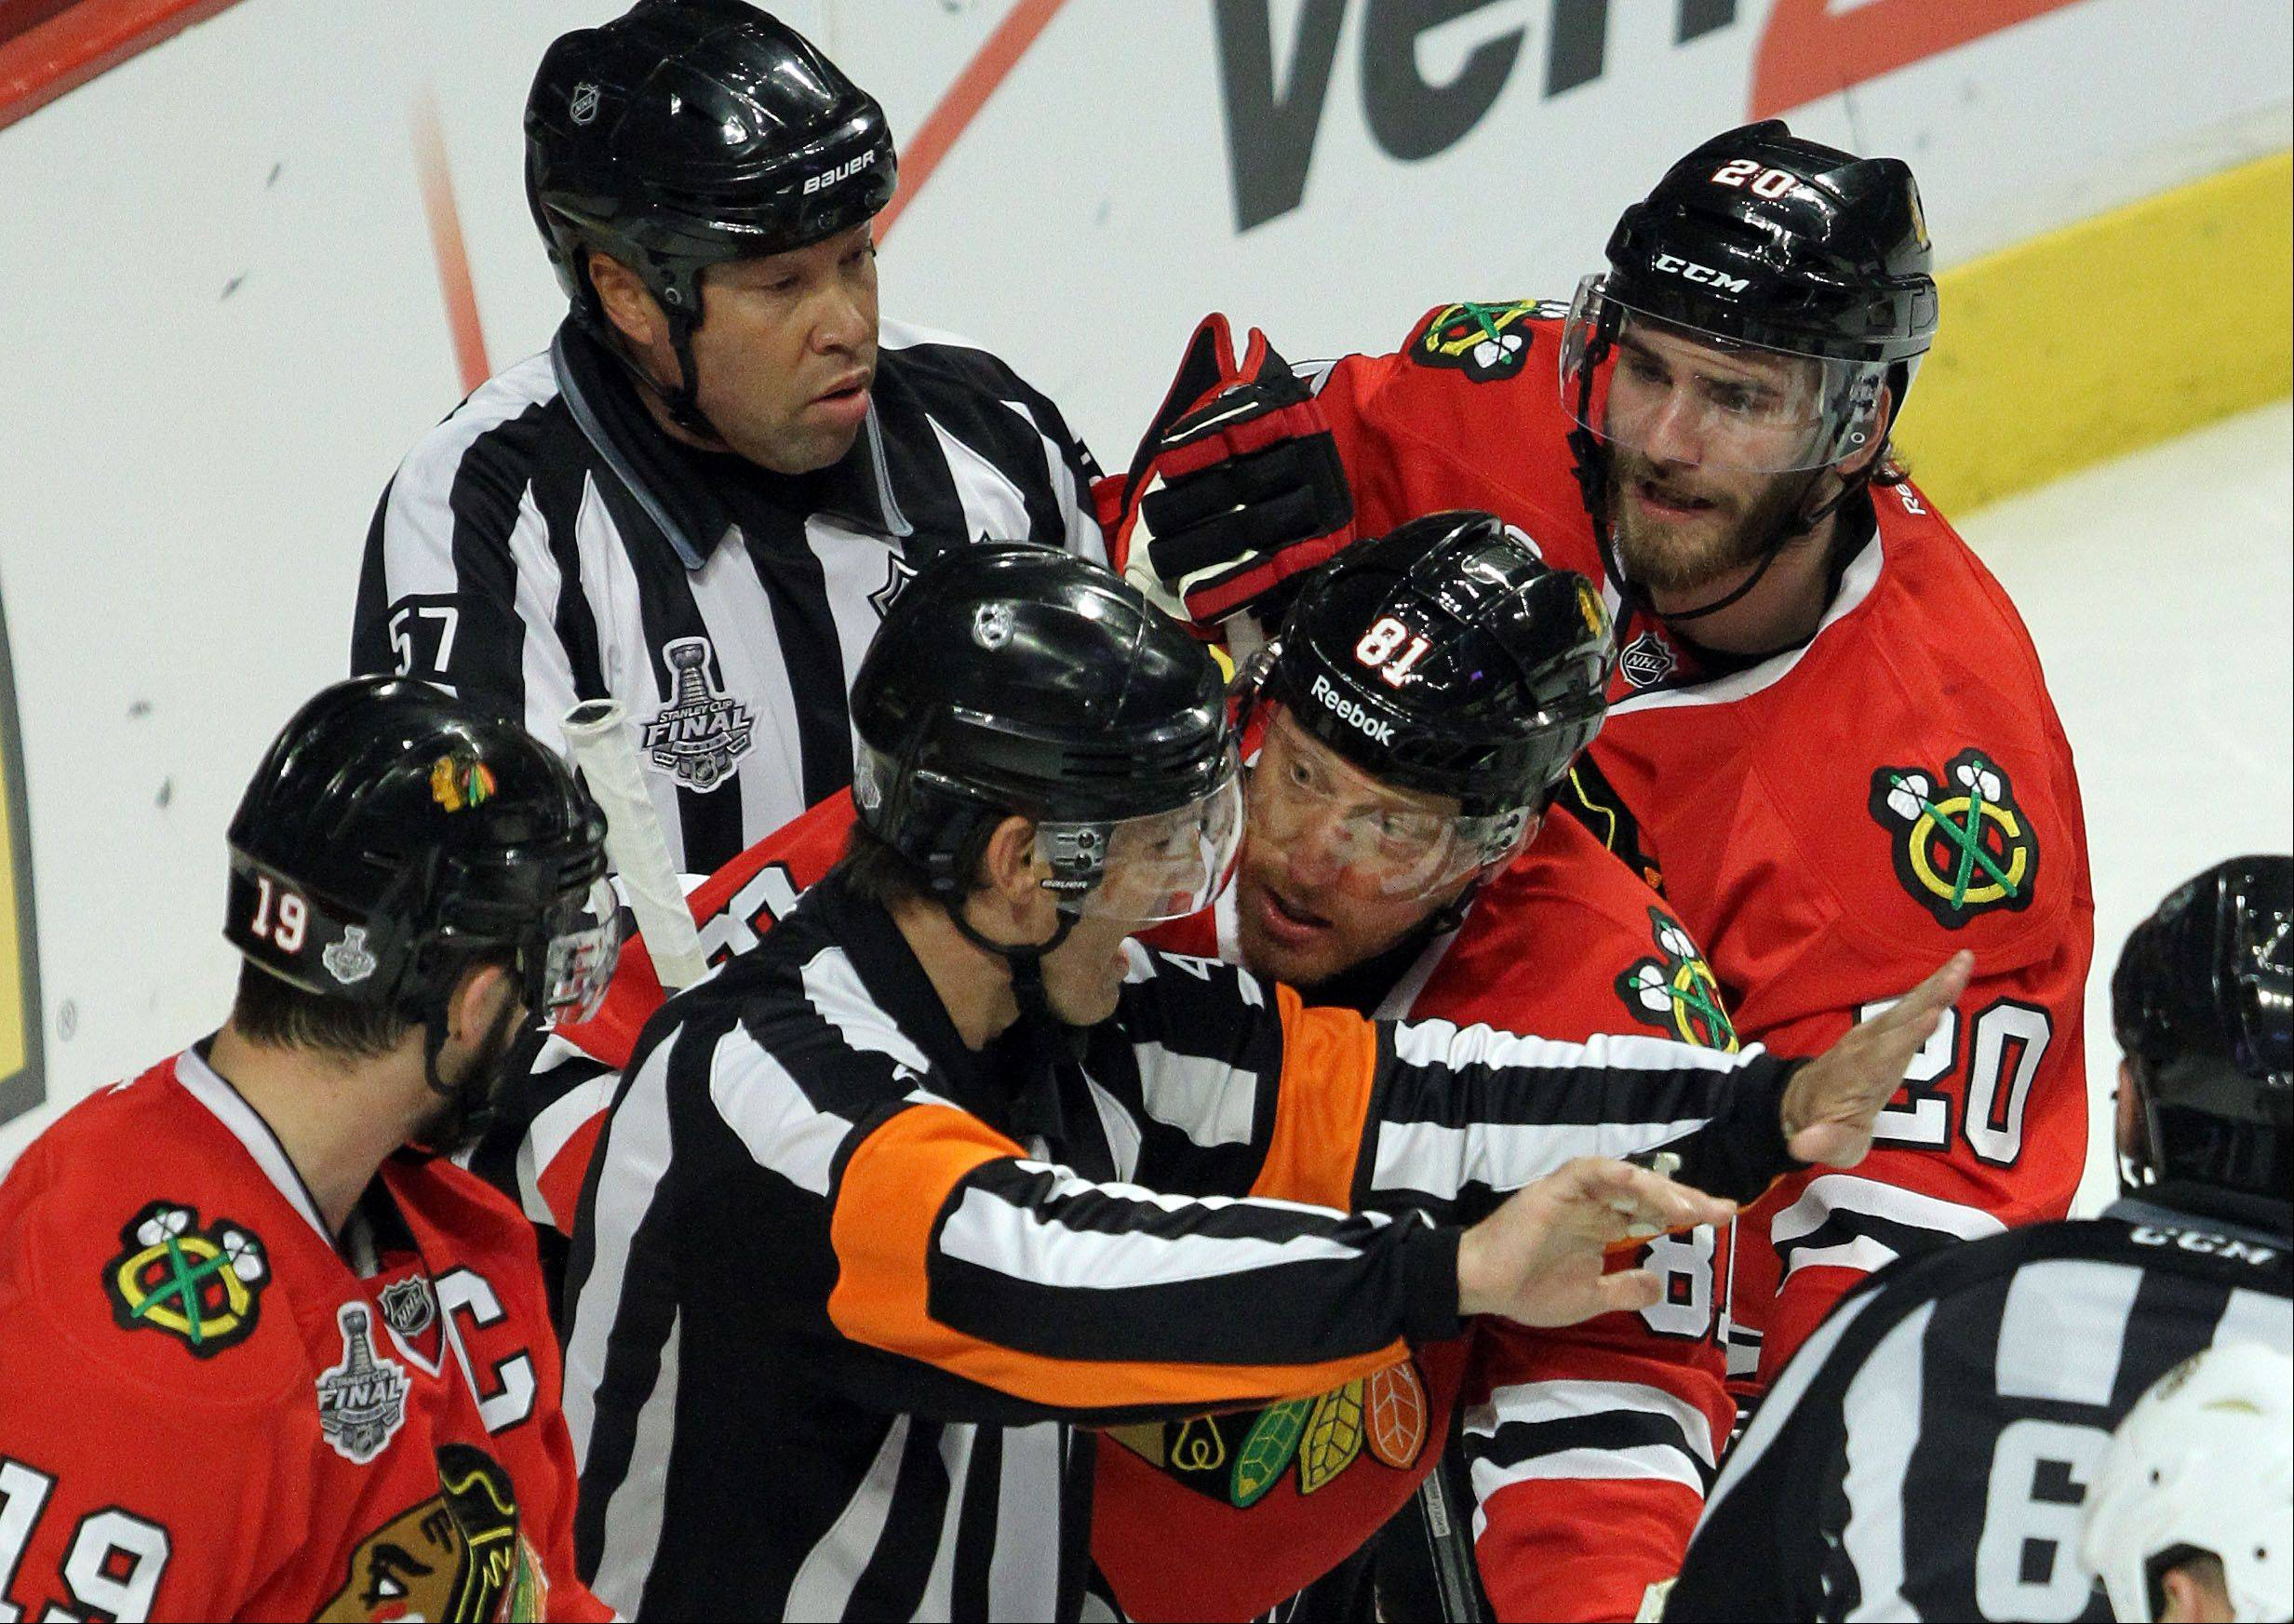 Chicago Blackhawks Jonathan Toews, Marian Hossa and Brandon Saad argue what they thought was a goal during game 2 of the Stanley Cup Finals at the United Center in Chicago Saturday.